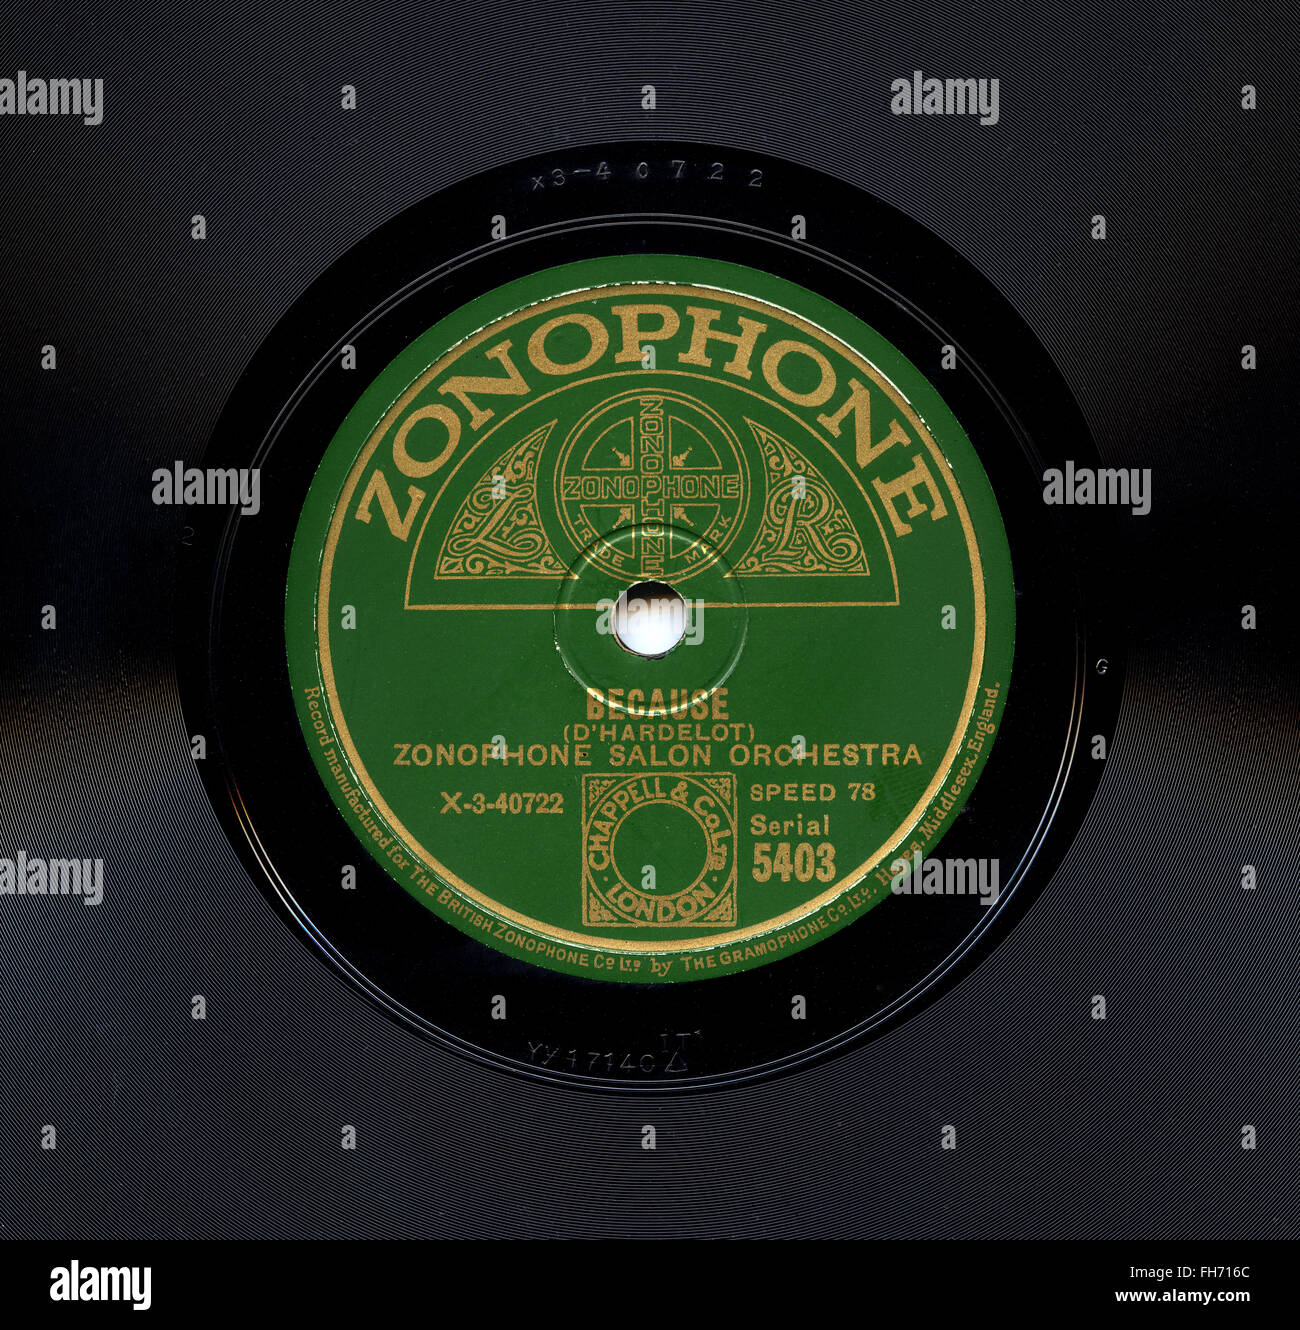 """Zonophone Salon Orchestra 78 rpm Zonophone record label """"Because"""" recorded Oct. 1929 - Stock Image"""